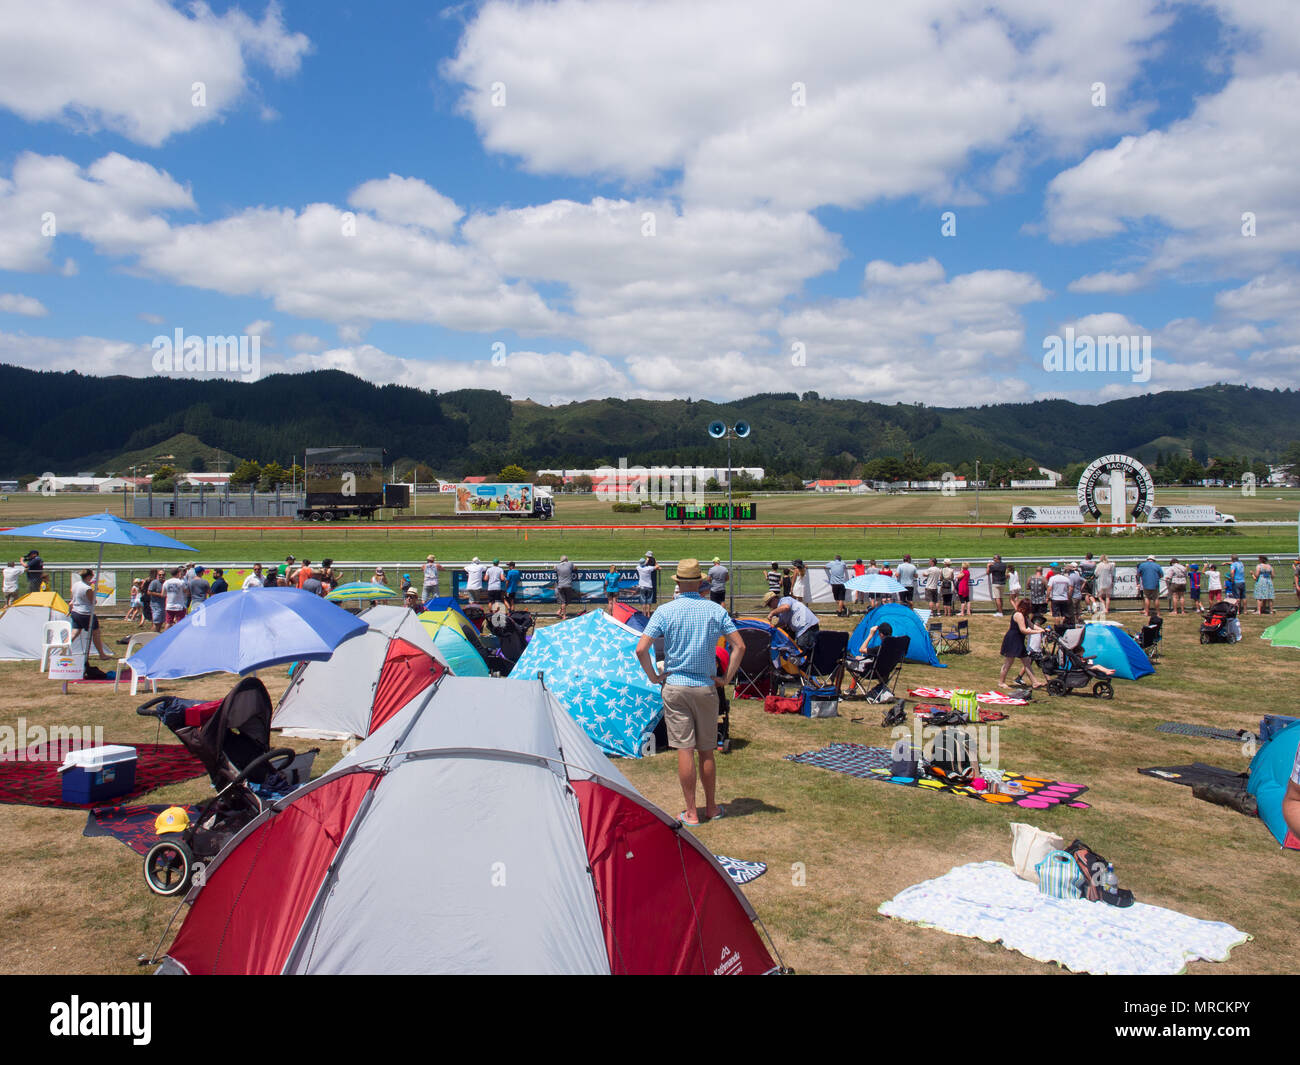 Crowd Of People At The Races At Trentham Racecourse - Stock Image